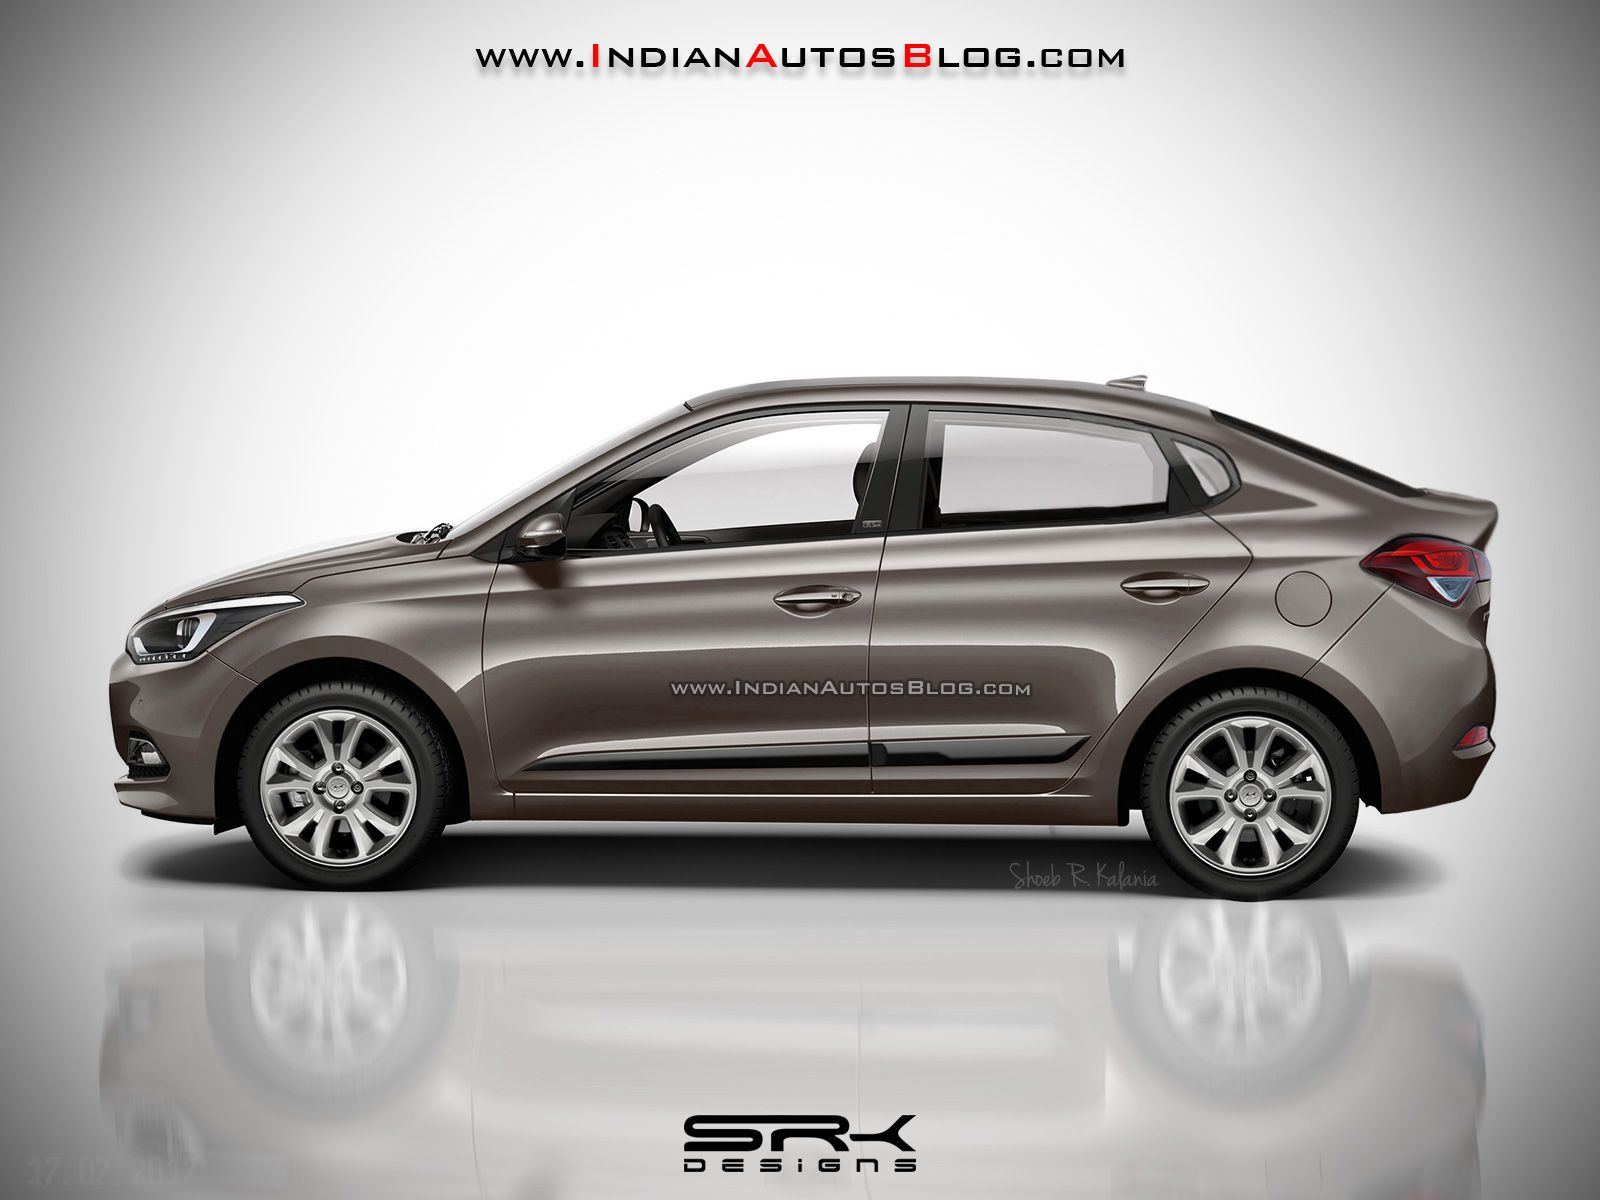 Recap   How About A Hyundai Fastback Coupe Styled Sedan?